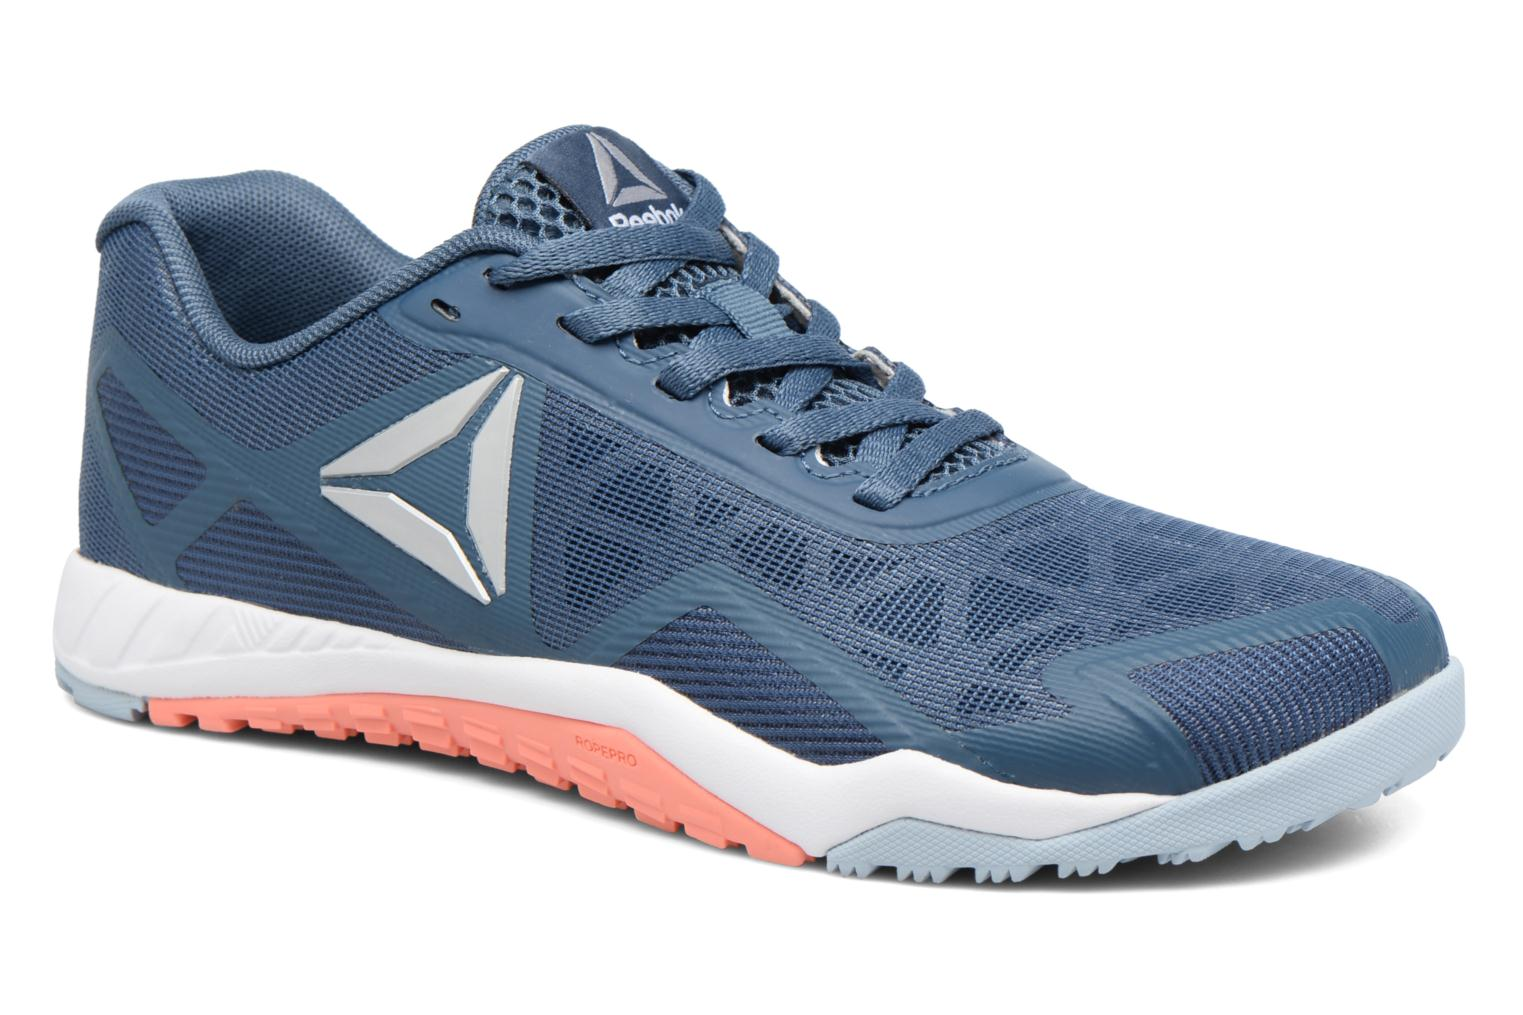 Ros Workout Tr 2.0 Brave Blue/Gable Grey/Stellar Pink/Pure